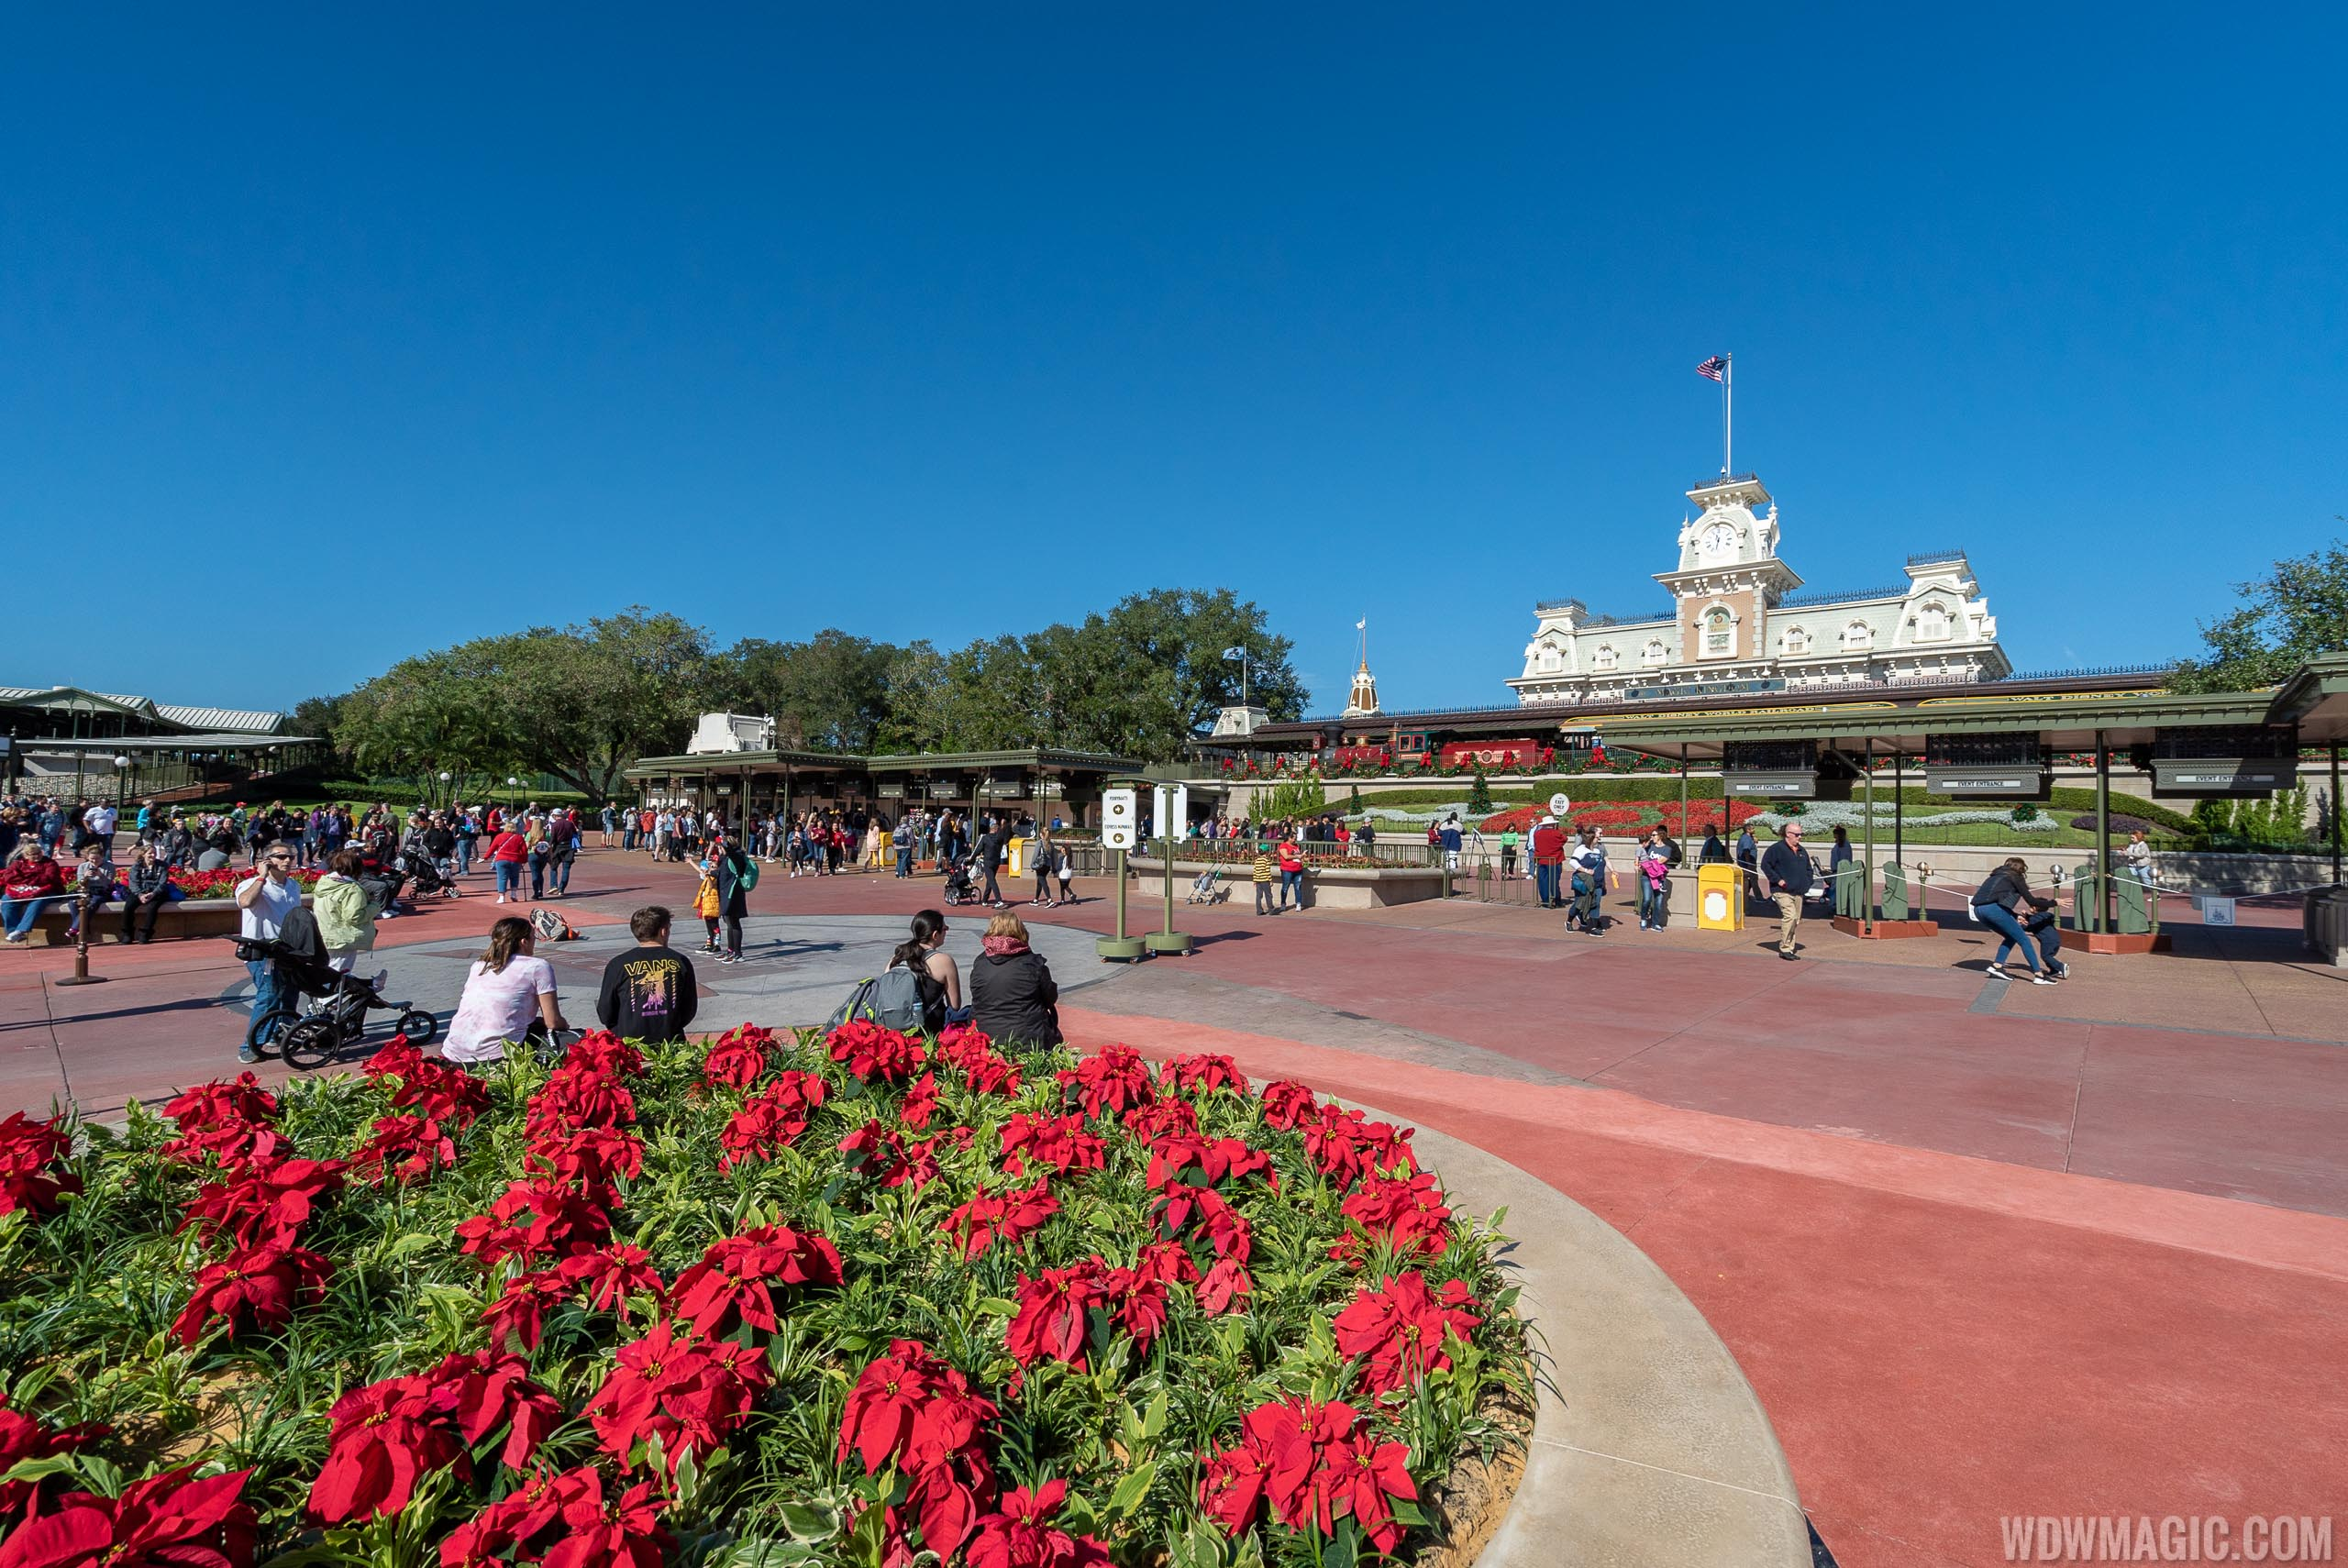 Magic Kingdom main entrance area construction - December 2019